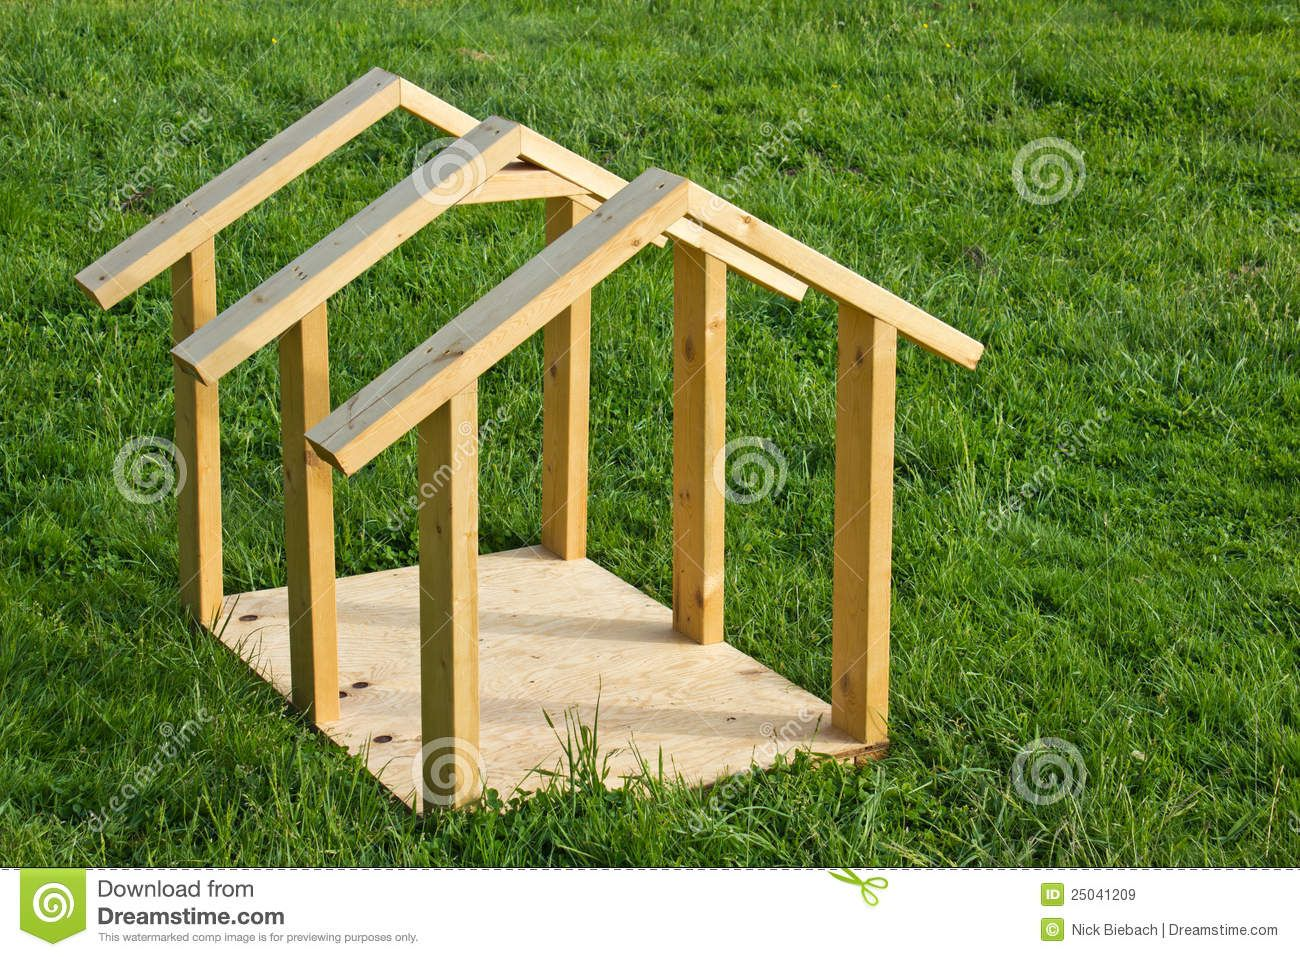 easy build dog house plans dog house wood frame royalty free stock - How To Build Small Wooden House